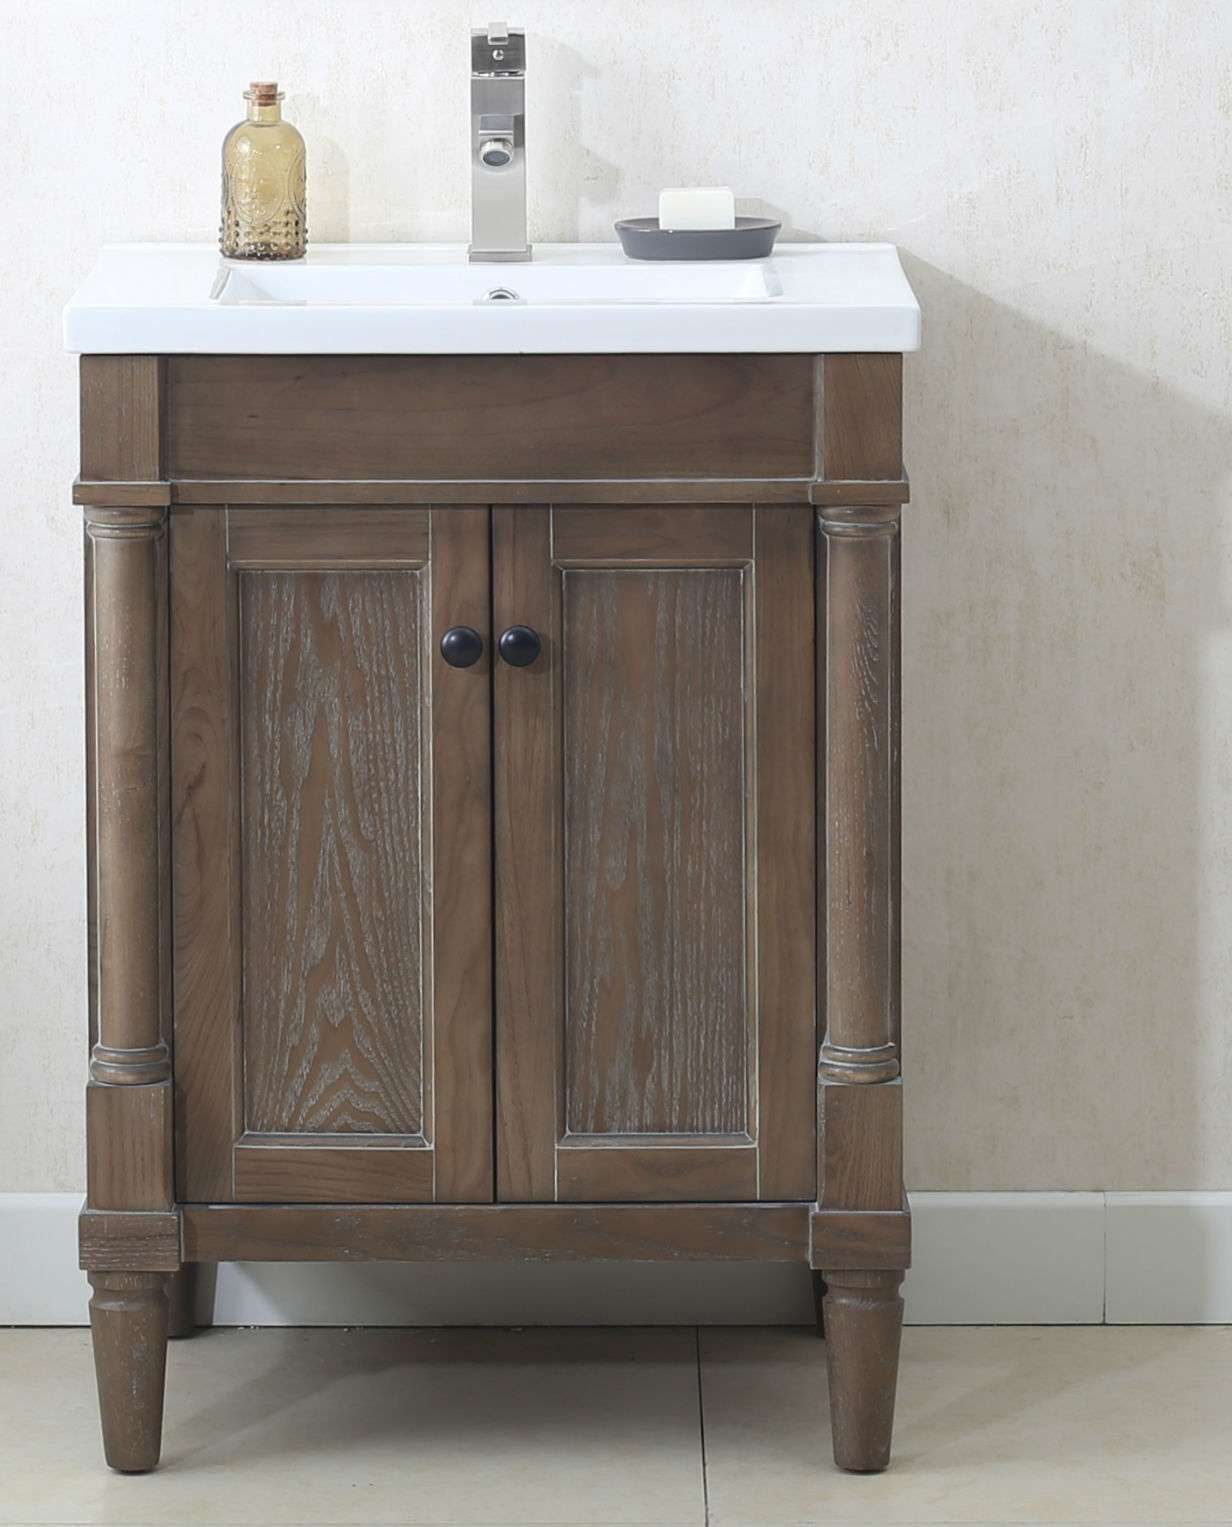 Lowest Price On Legion Furniture 24 Weathered Gray Sink Vanity Wlf7021 Today